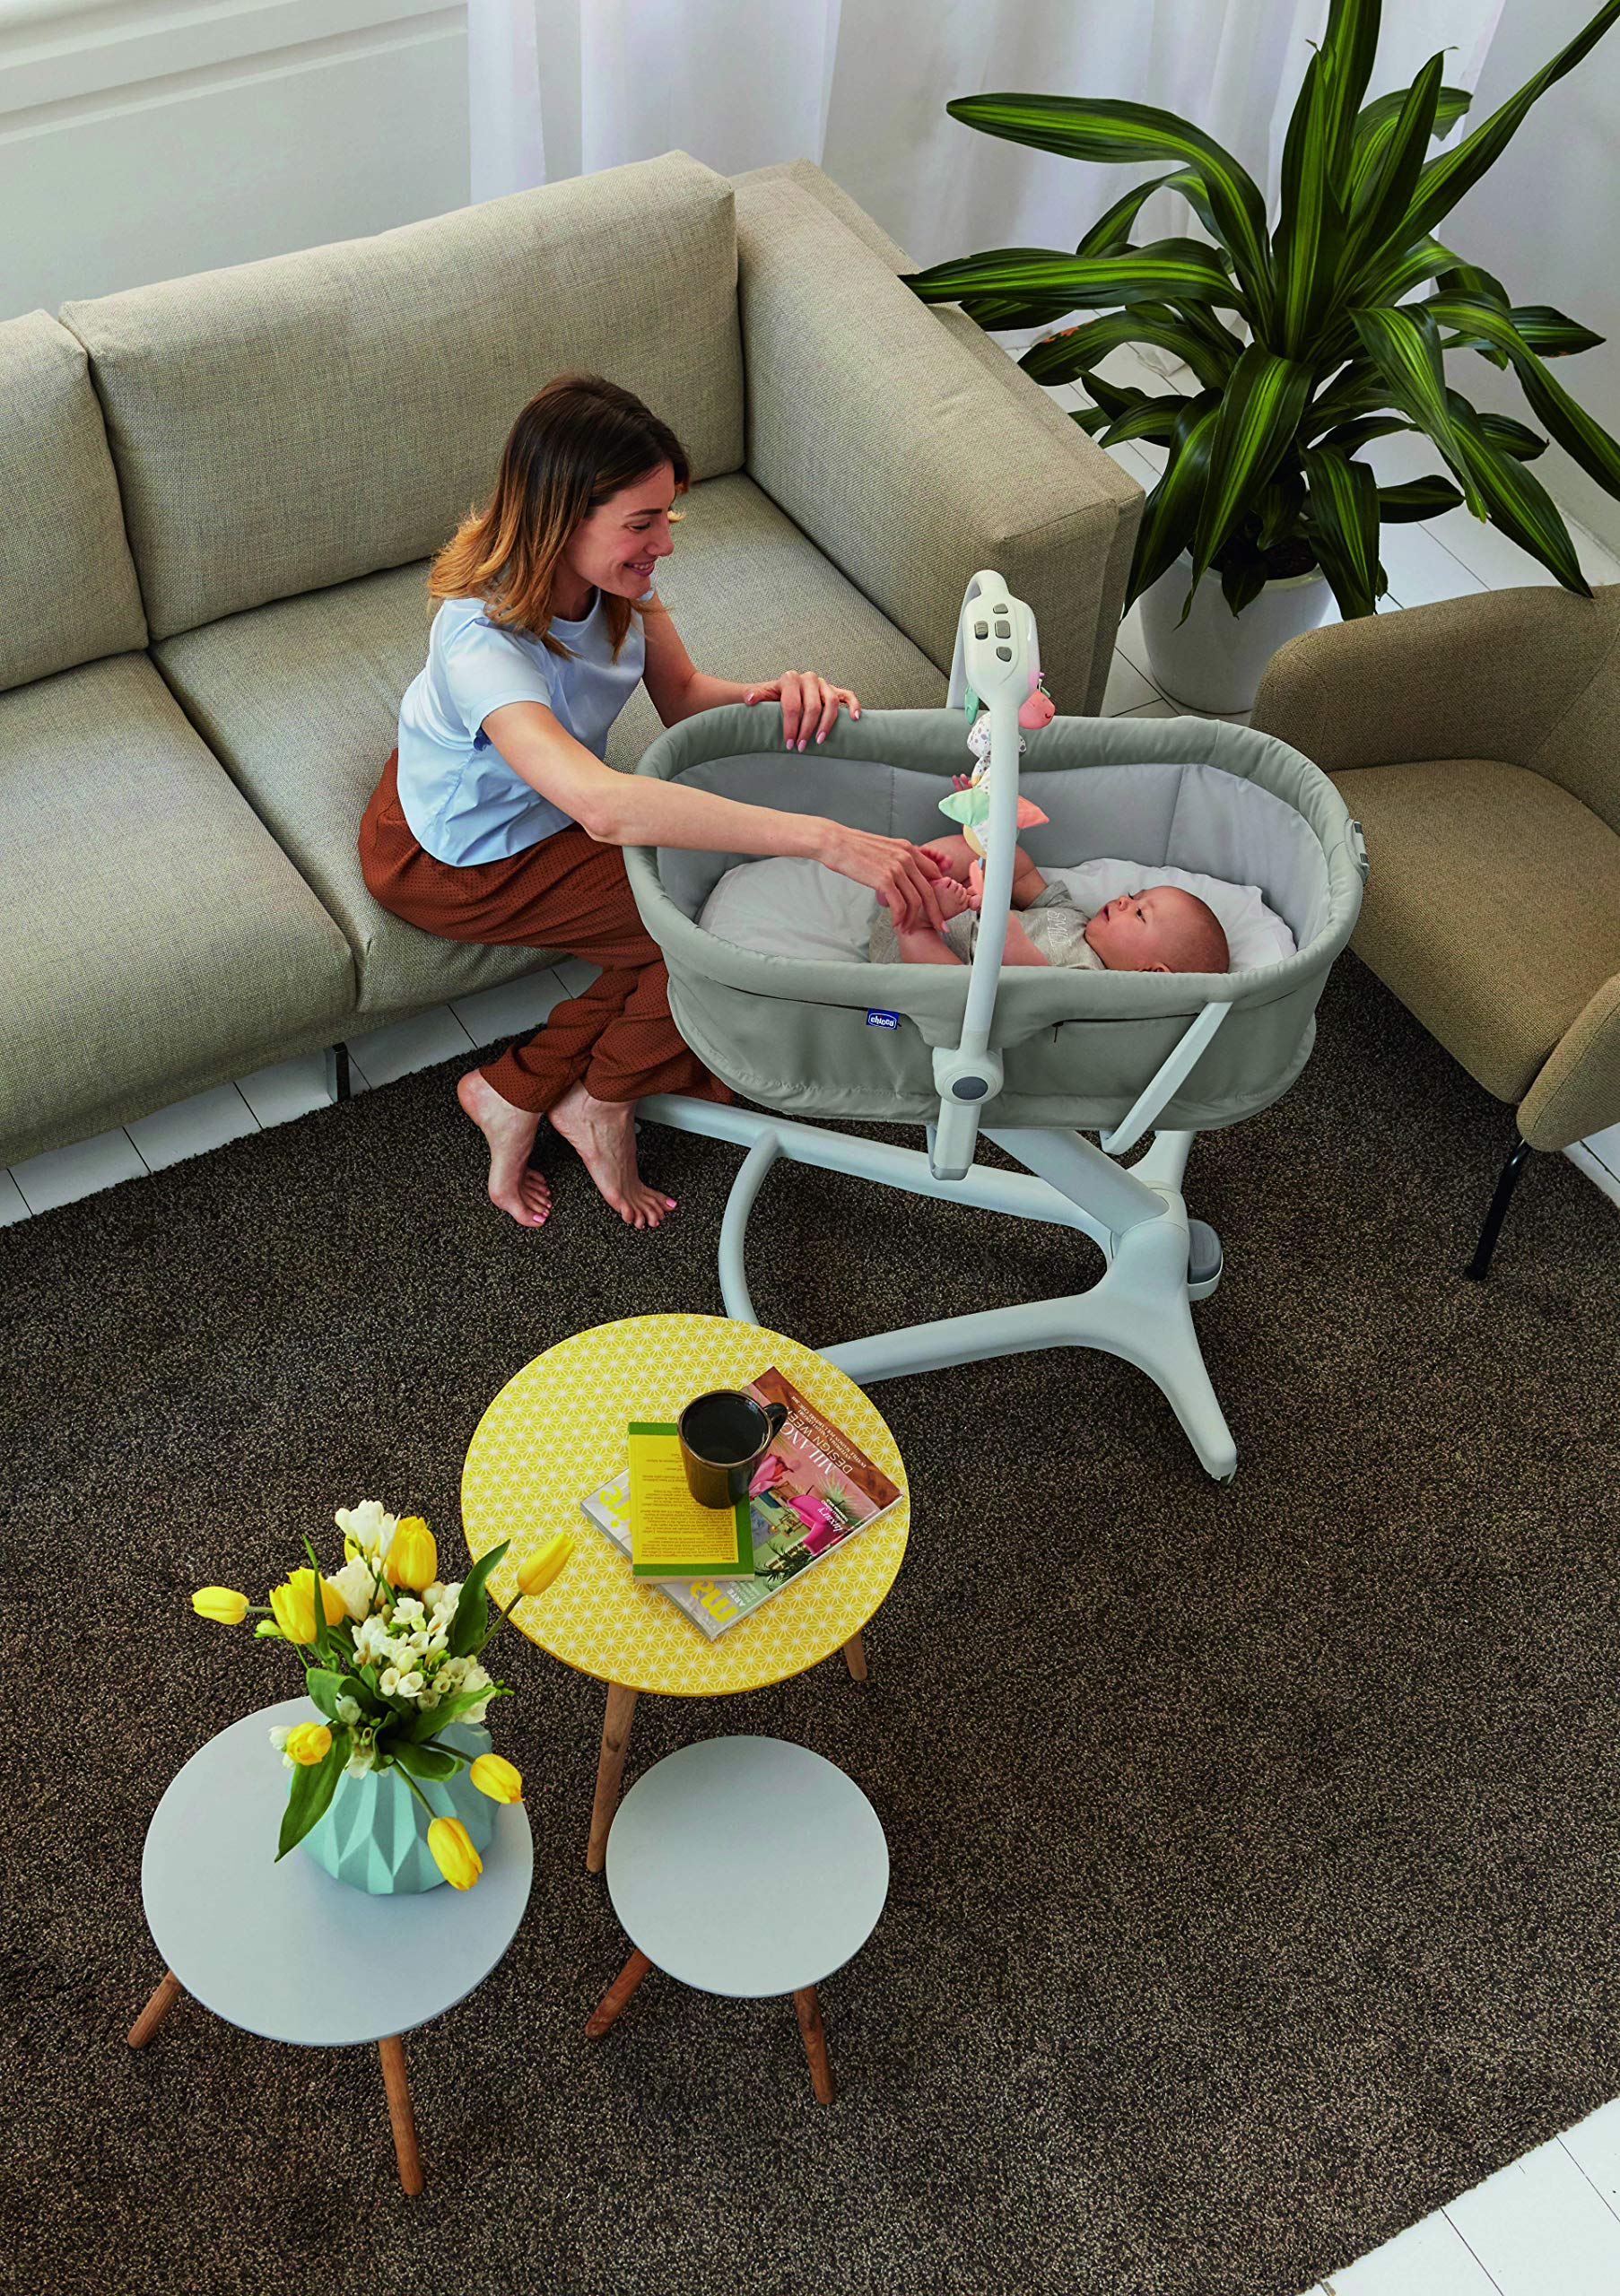 Chicco Baby Hug 4 in 1, Legend  It covers all your and your baby's needs: it is a comfy crib, a recliner from birth, a convenient highchair and finally your child's first chair from 6 months. Adjustable heights and backrest and 4 wheels Removable reducer to make the recliner suitable from birth 8